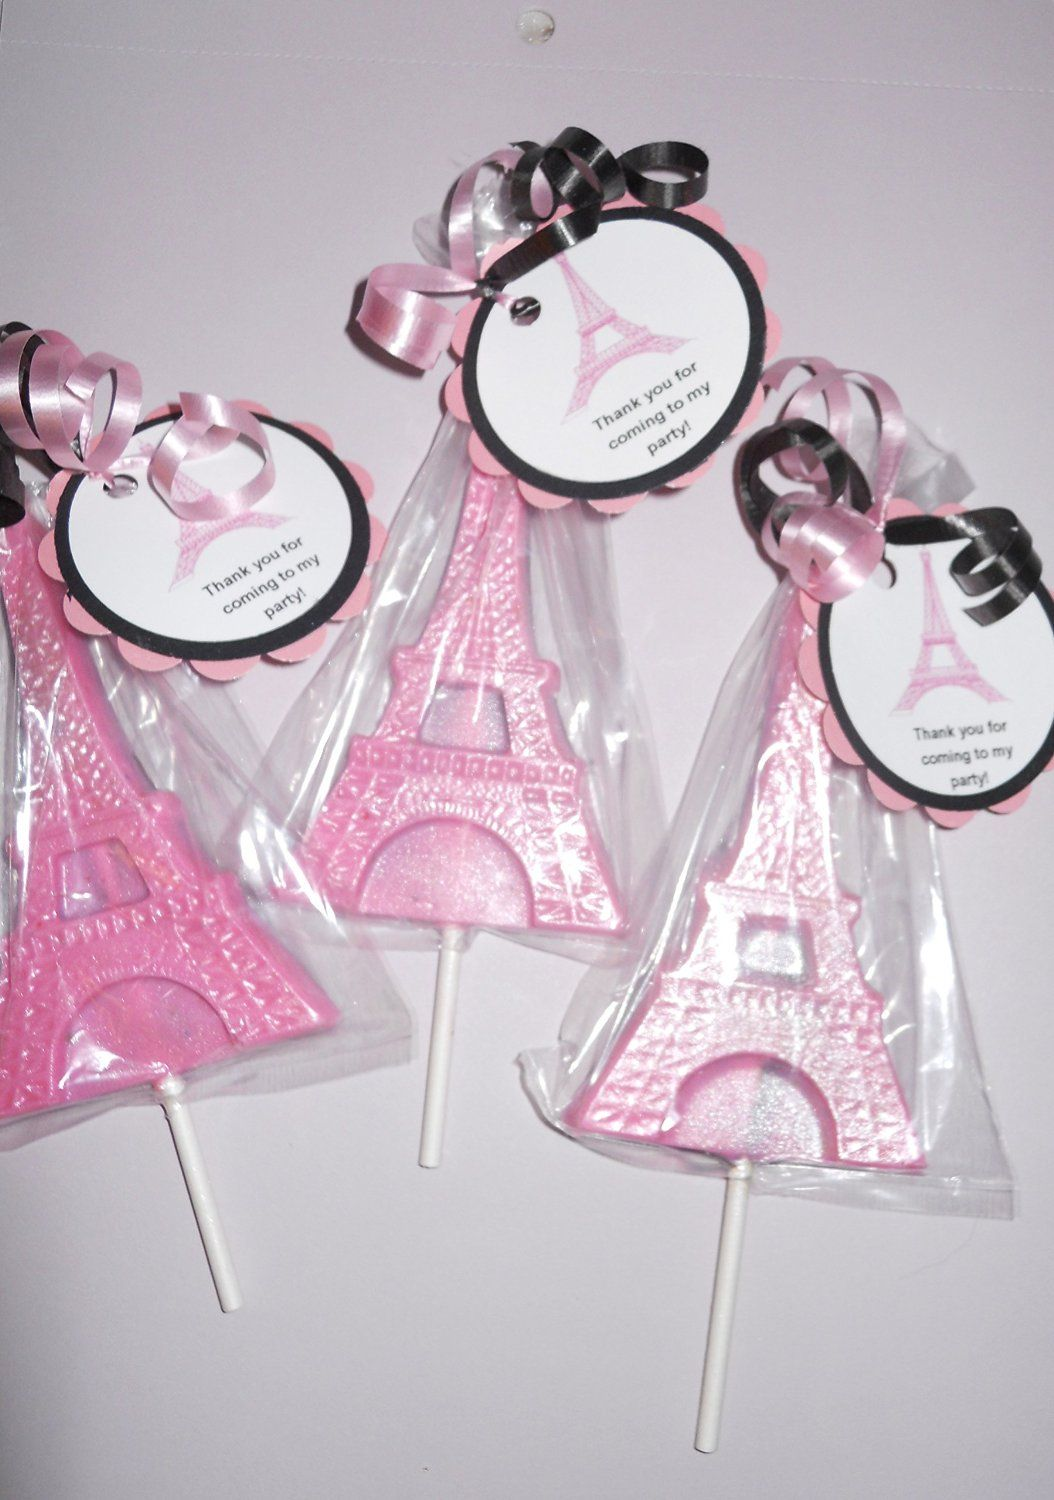 Bridal shower party supplies - 12 Eiffel Tower Paris Ooh La La Gourmet Chocolate Lollipops With Ribbon Kids Favors Wedding